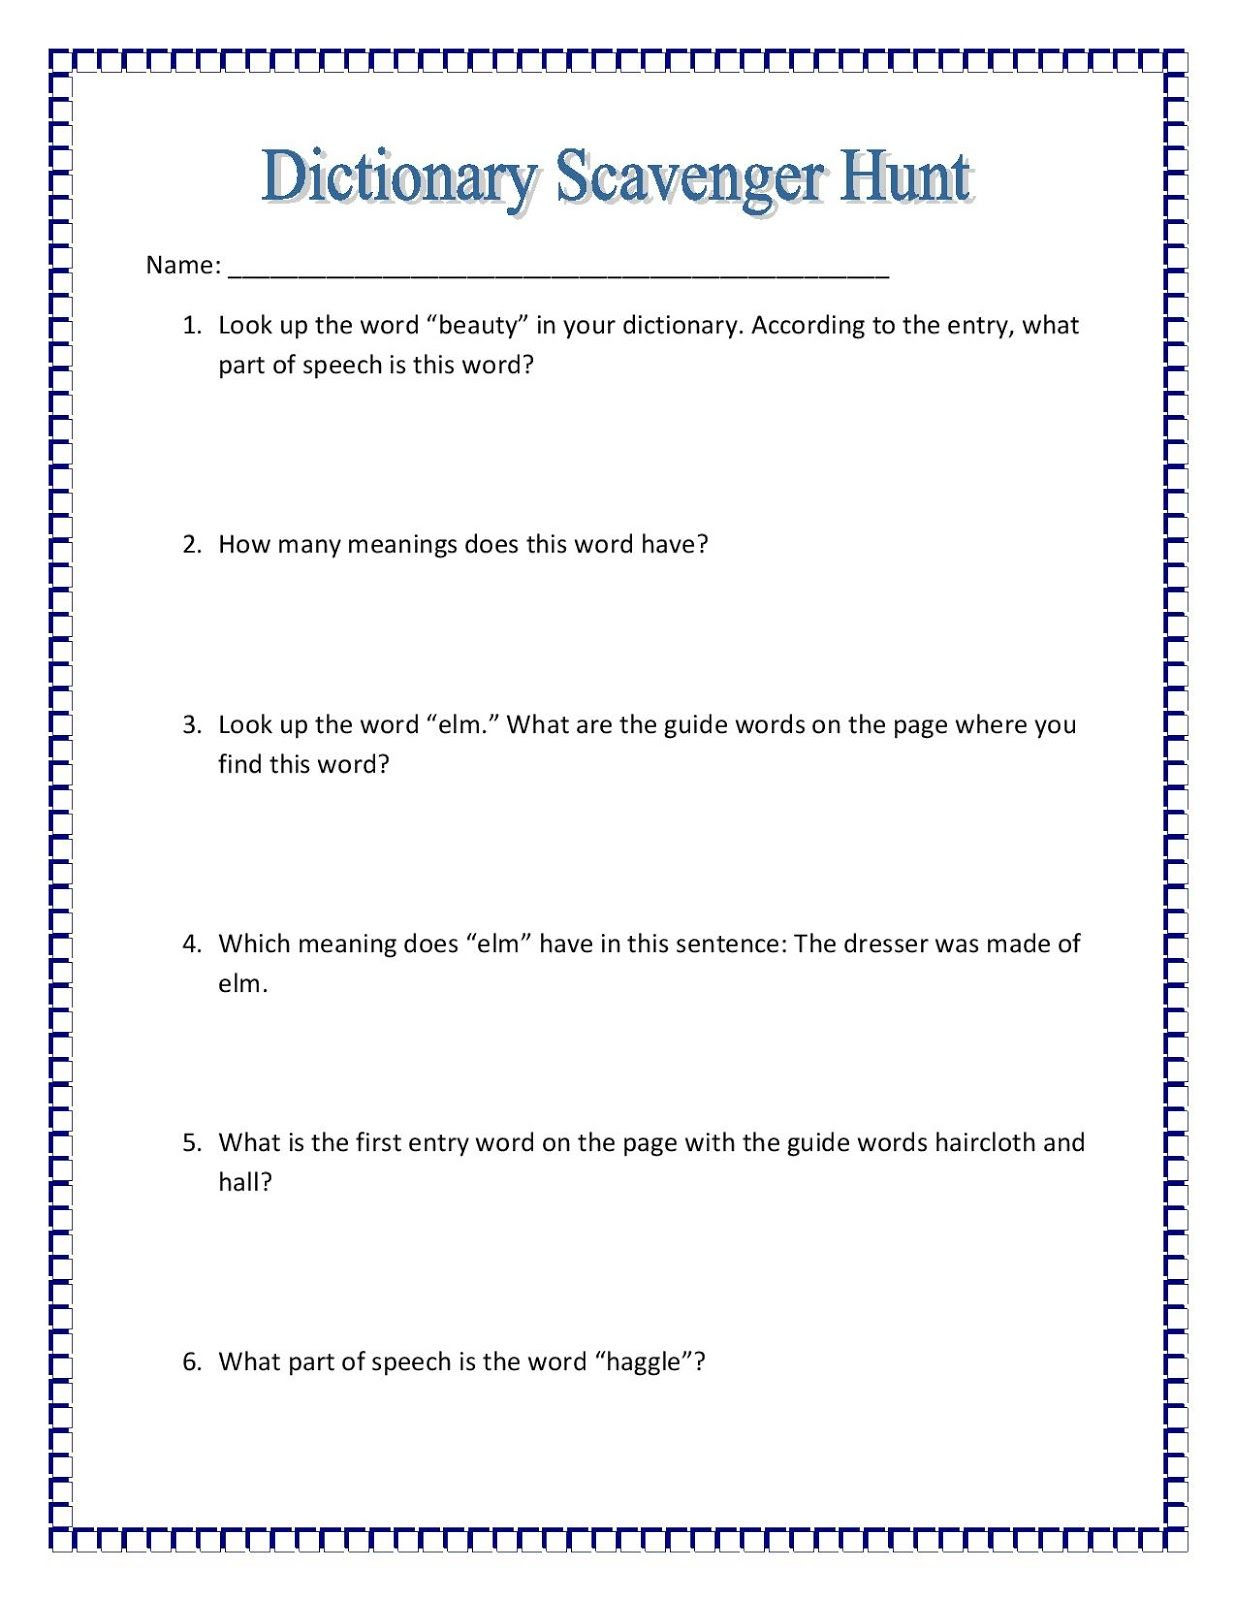 Dictionary Skills Worksheets Middle School Maniac Monday Dictionary Scavenger Hunt